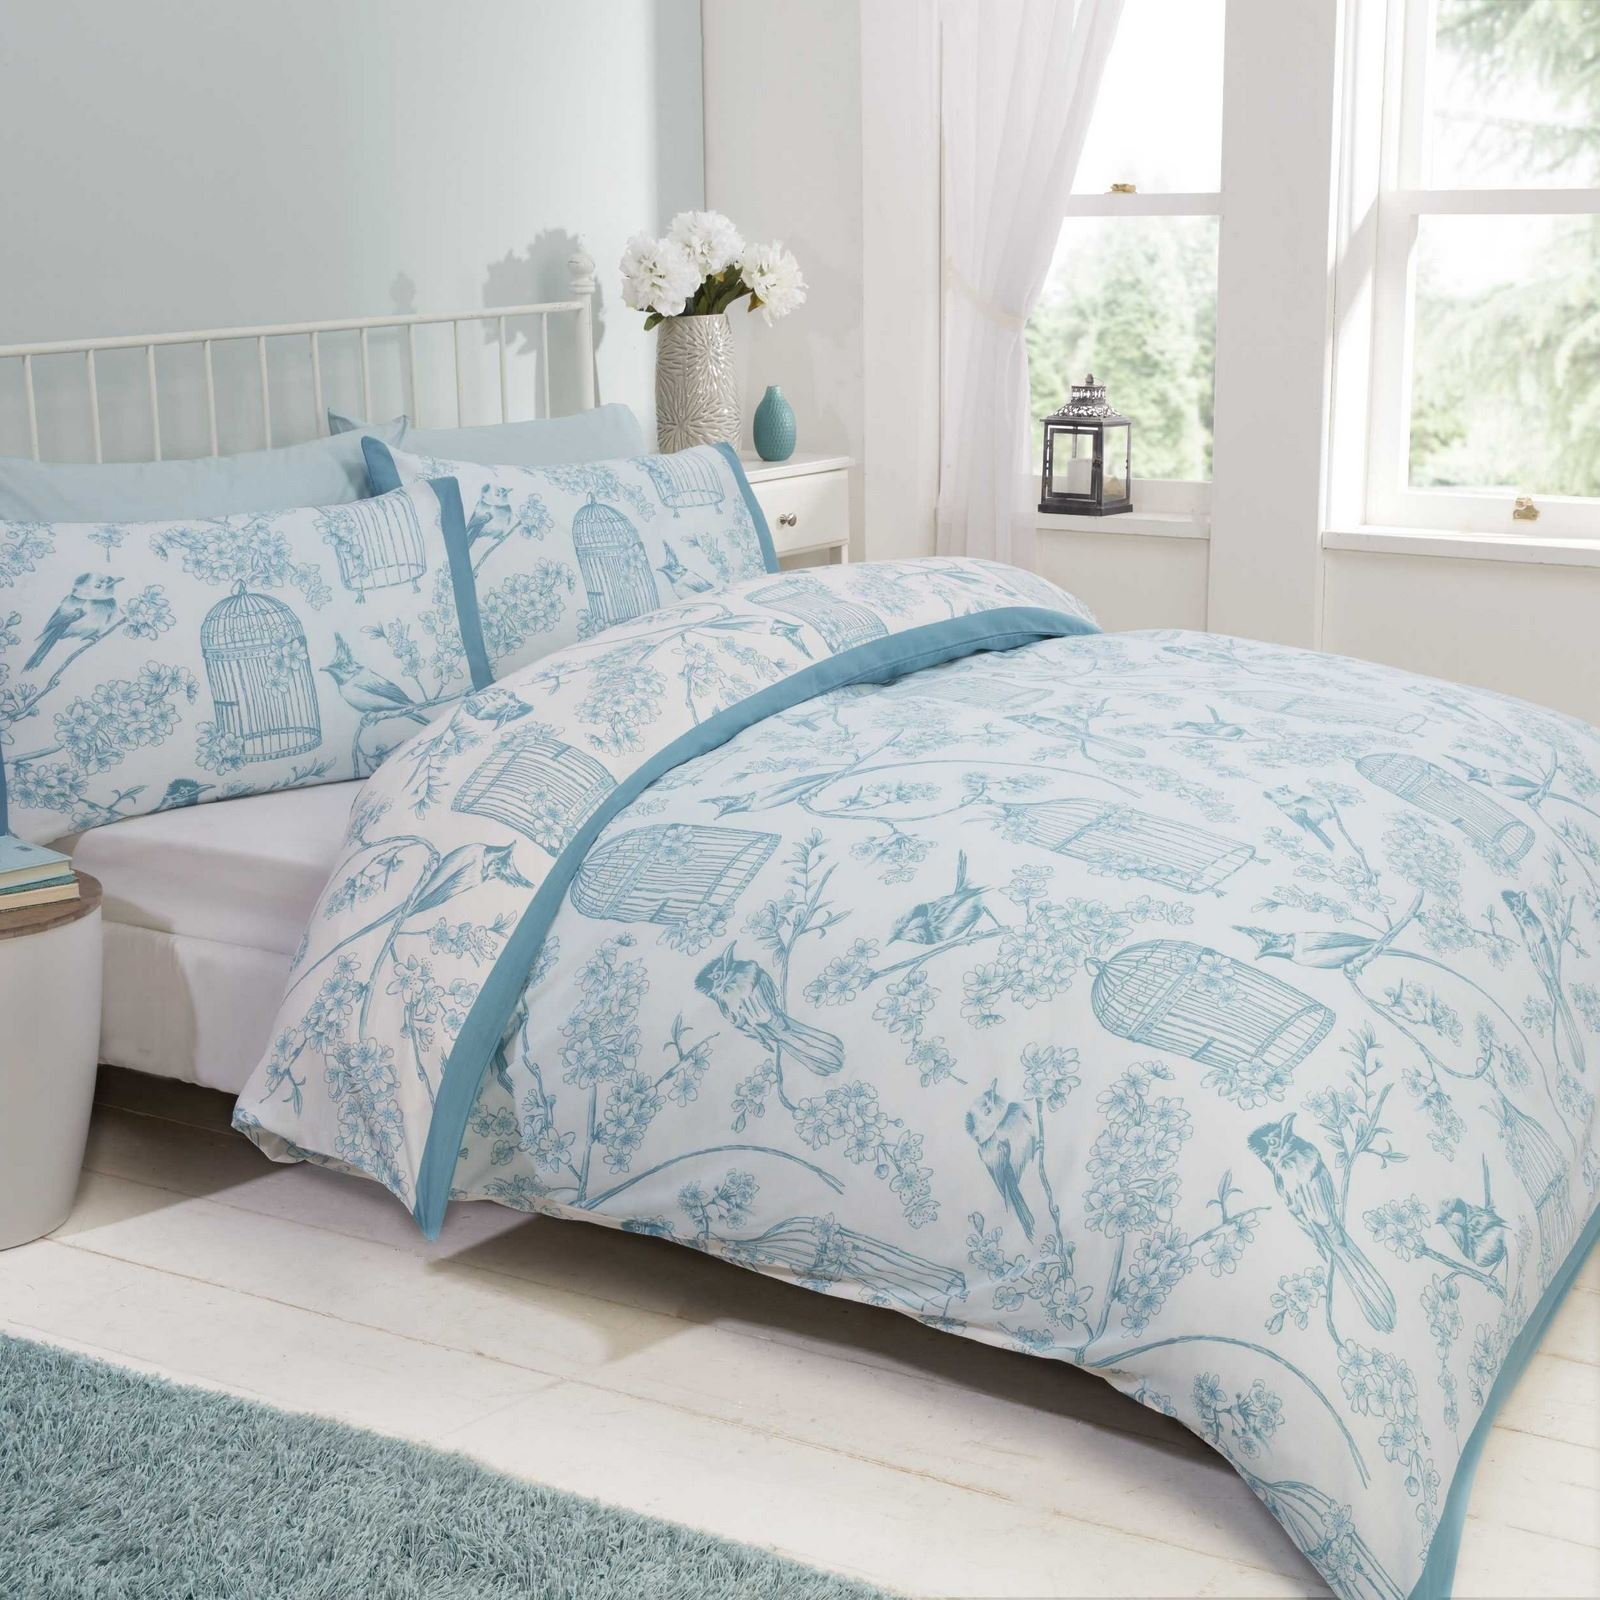 Floral Quilt Duvet Cover Amp Pillowcase Bedding Bed Set